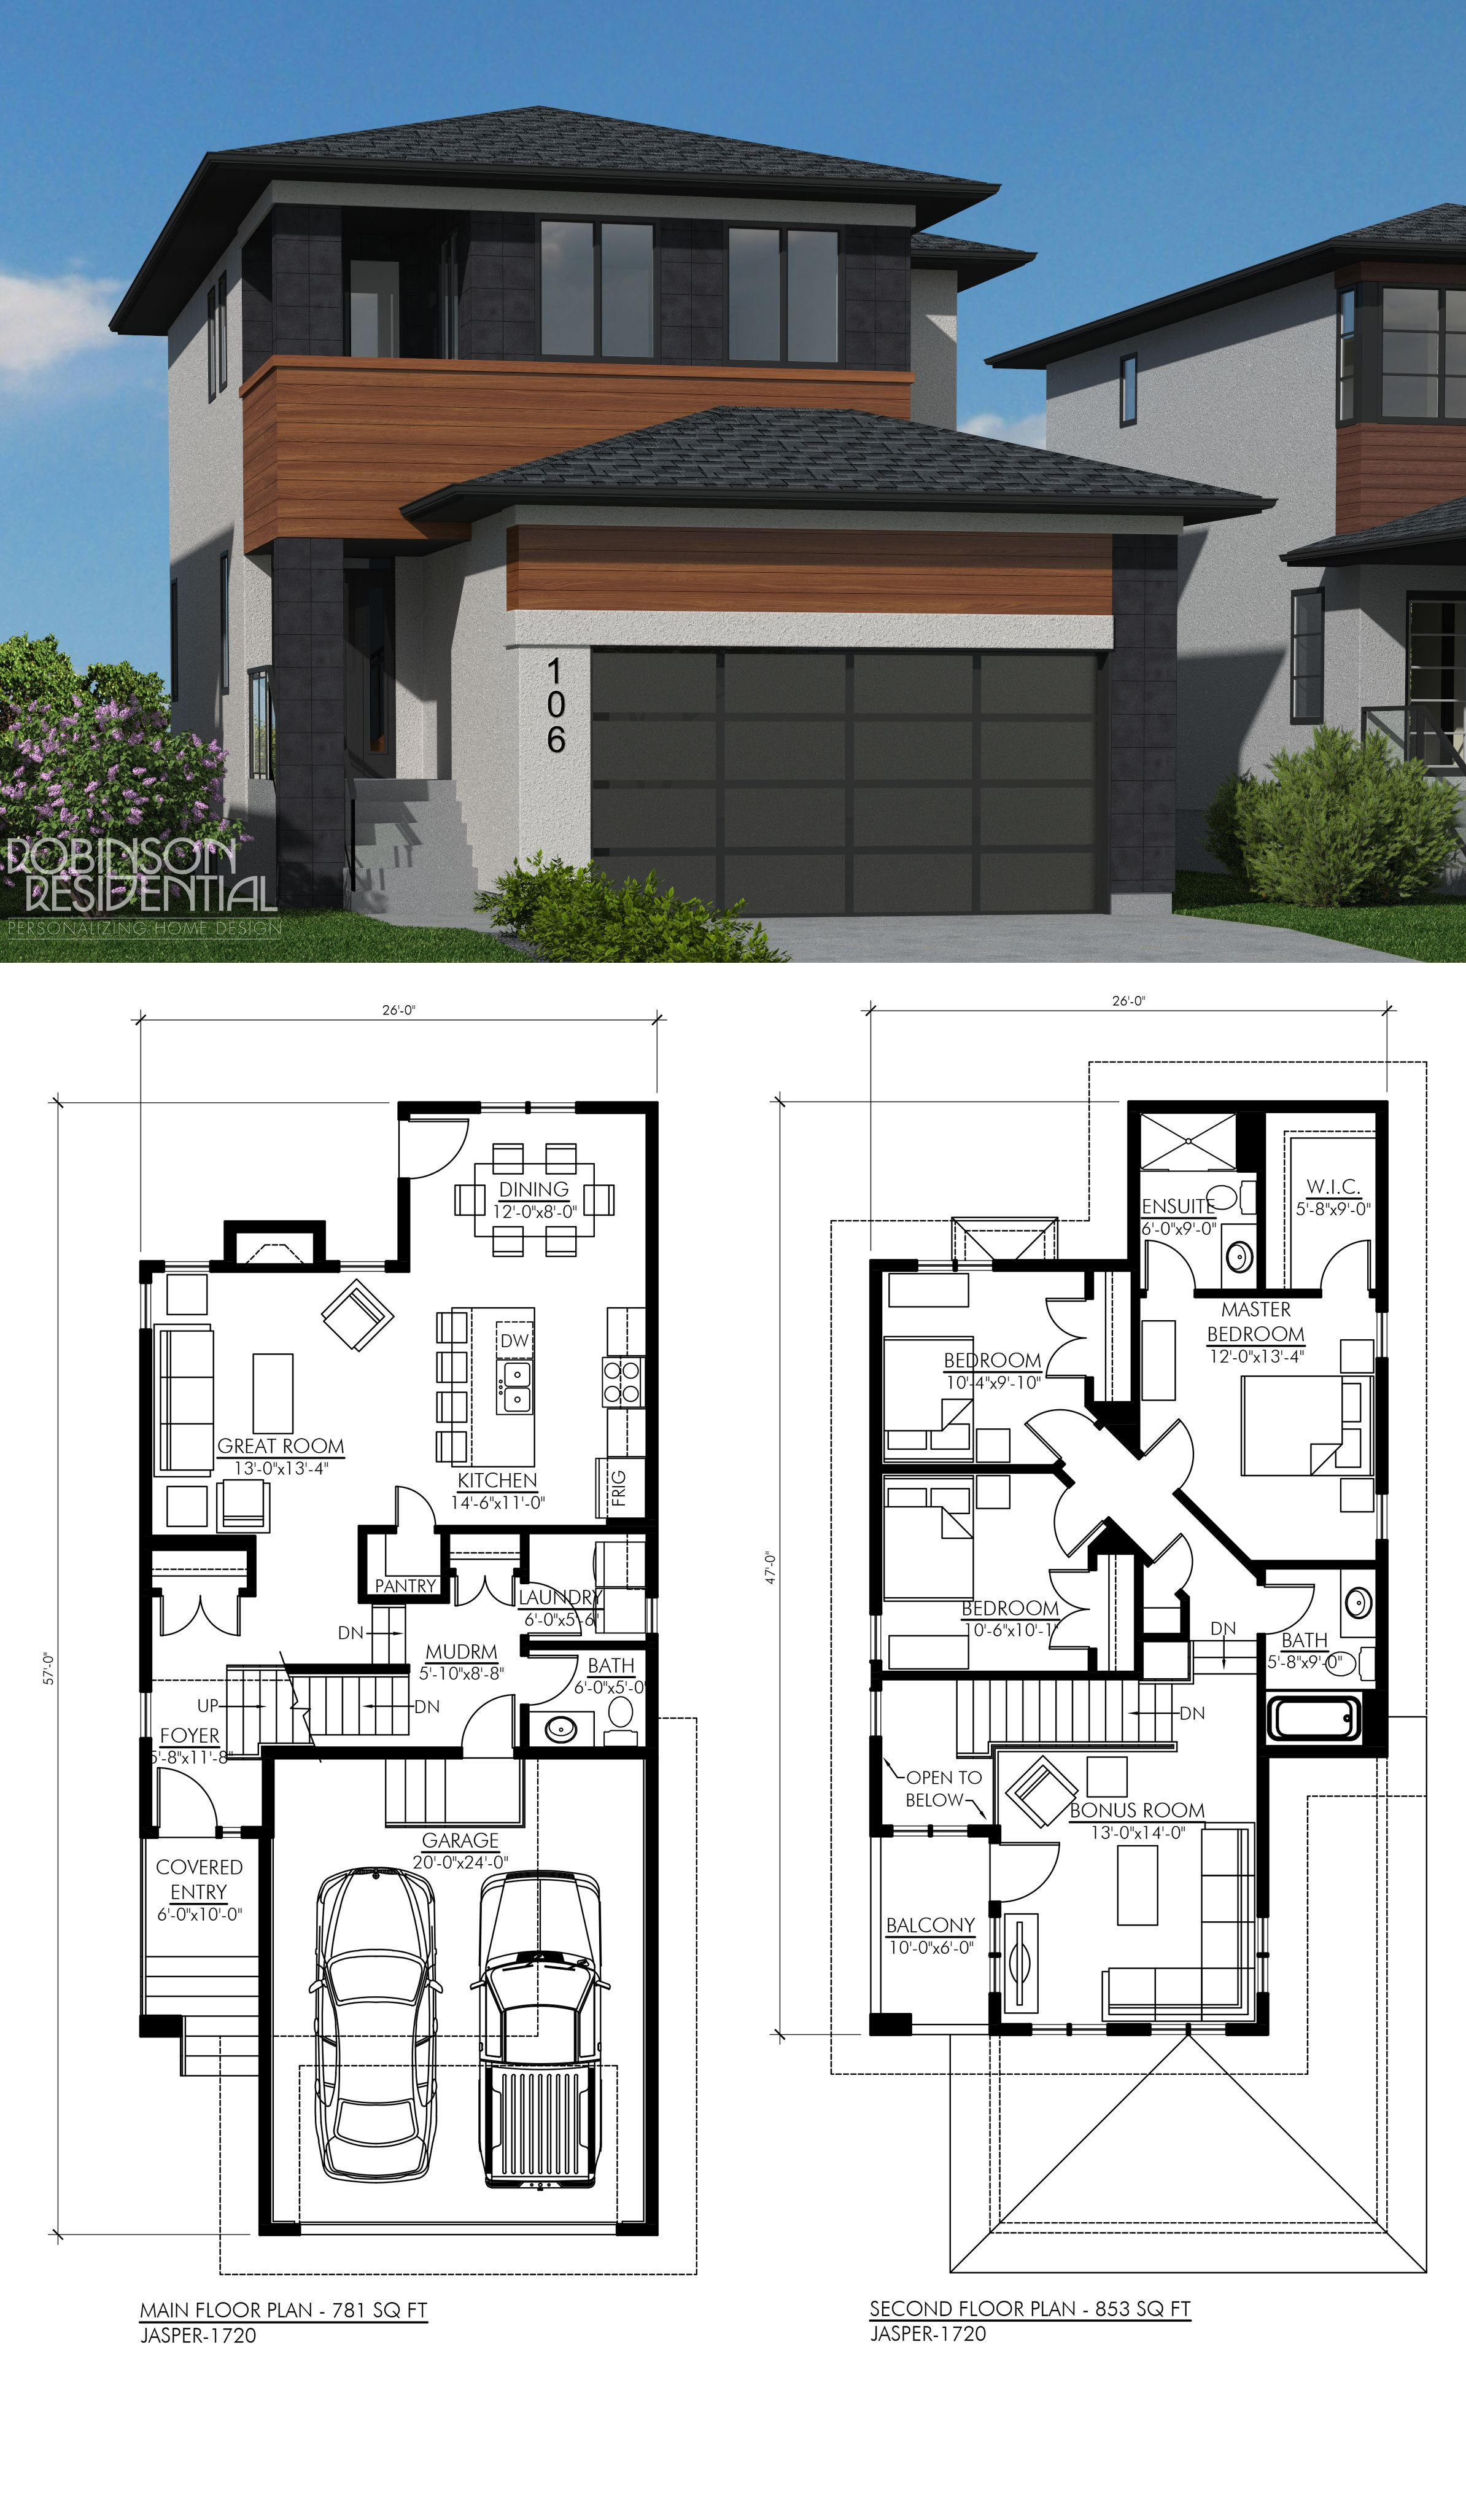 Small House Plans with Garage Lovely Contemporary Jasper 1720